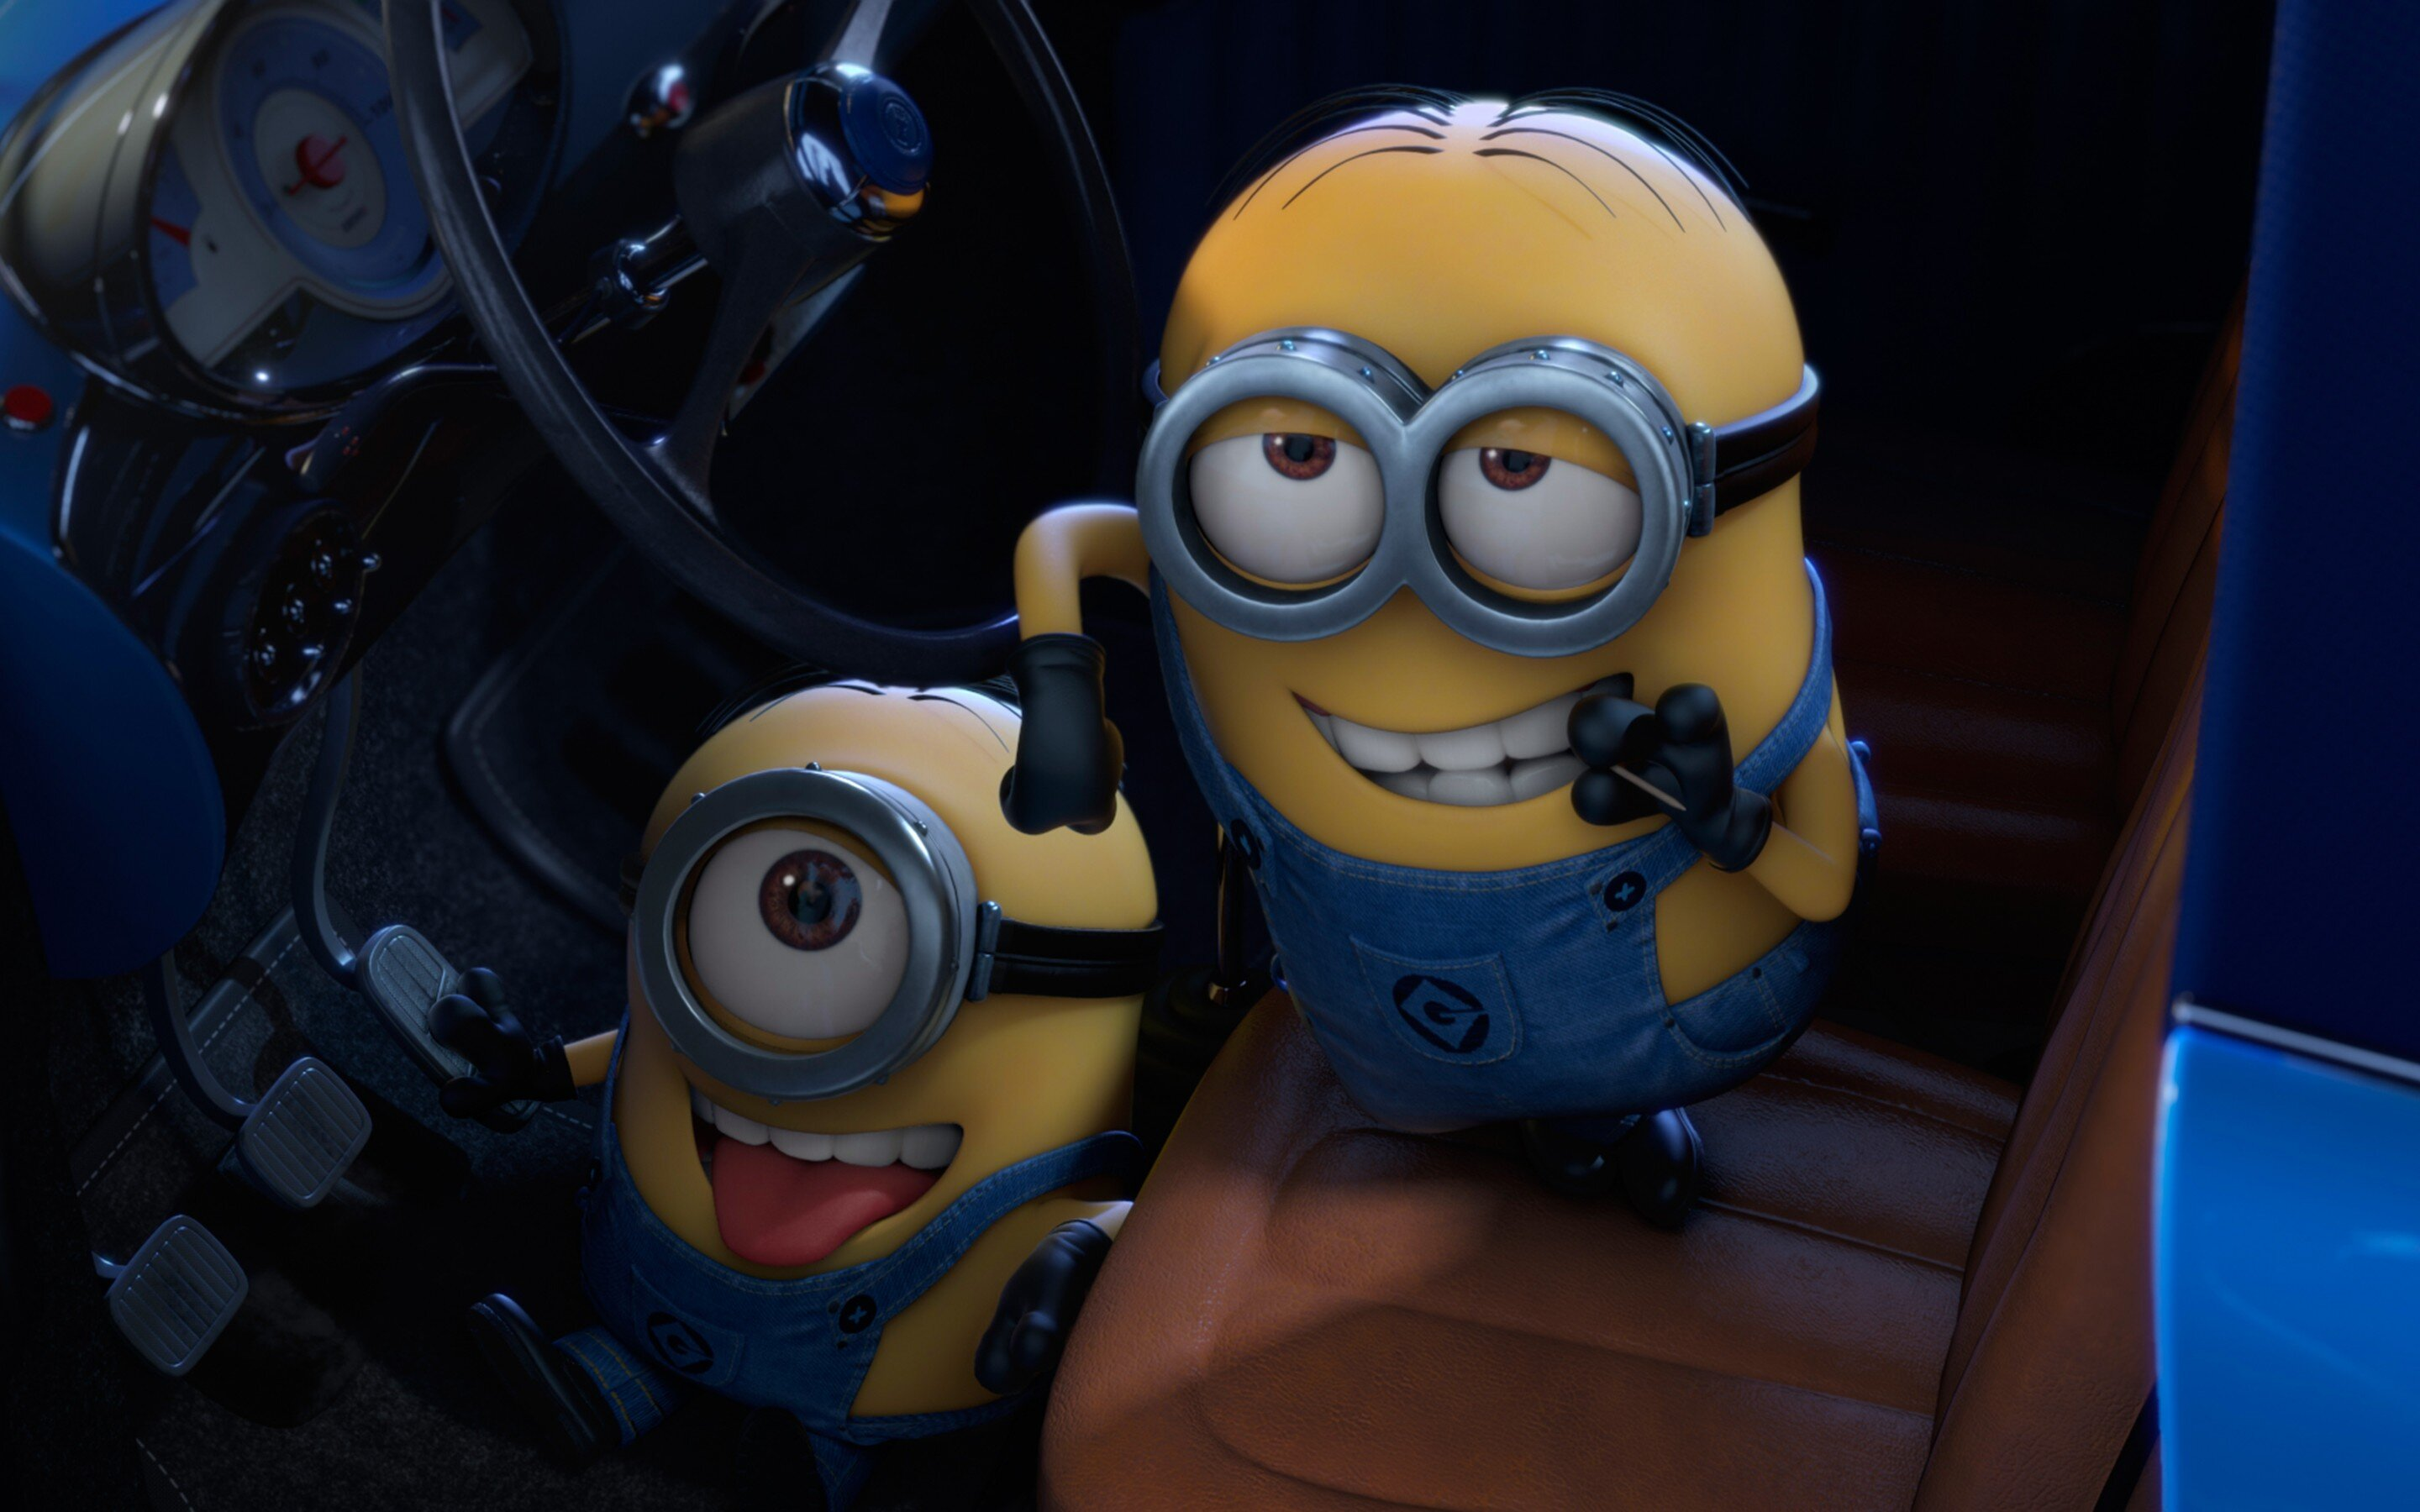 best despicable me 2 wallpaper id:281460 for high resolution hd